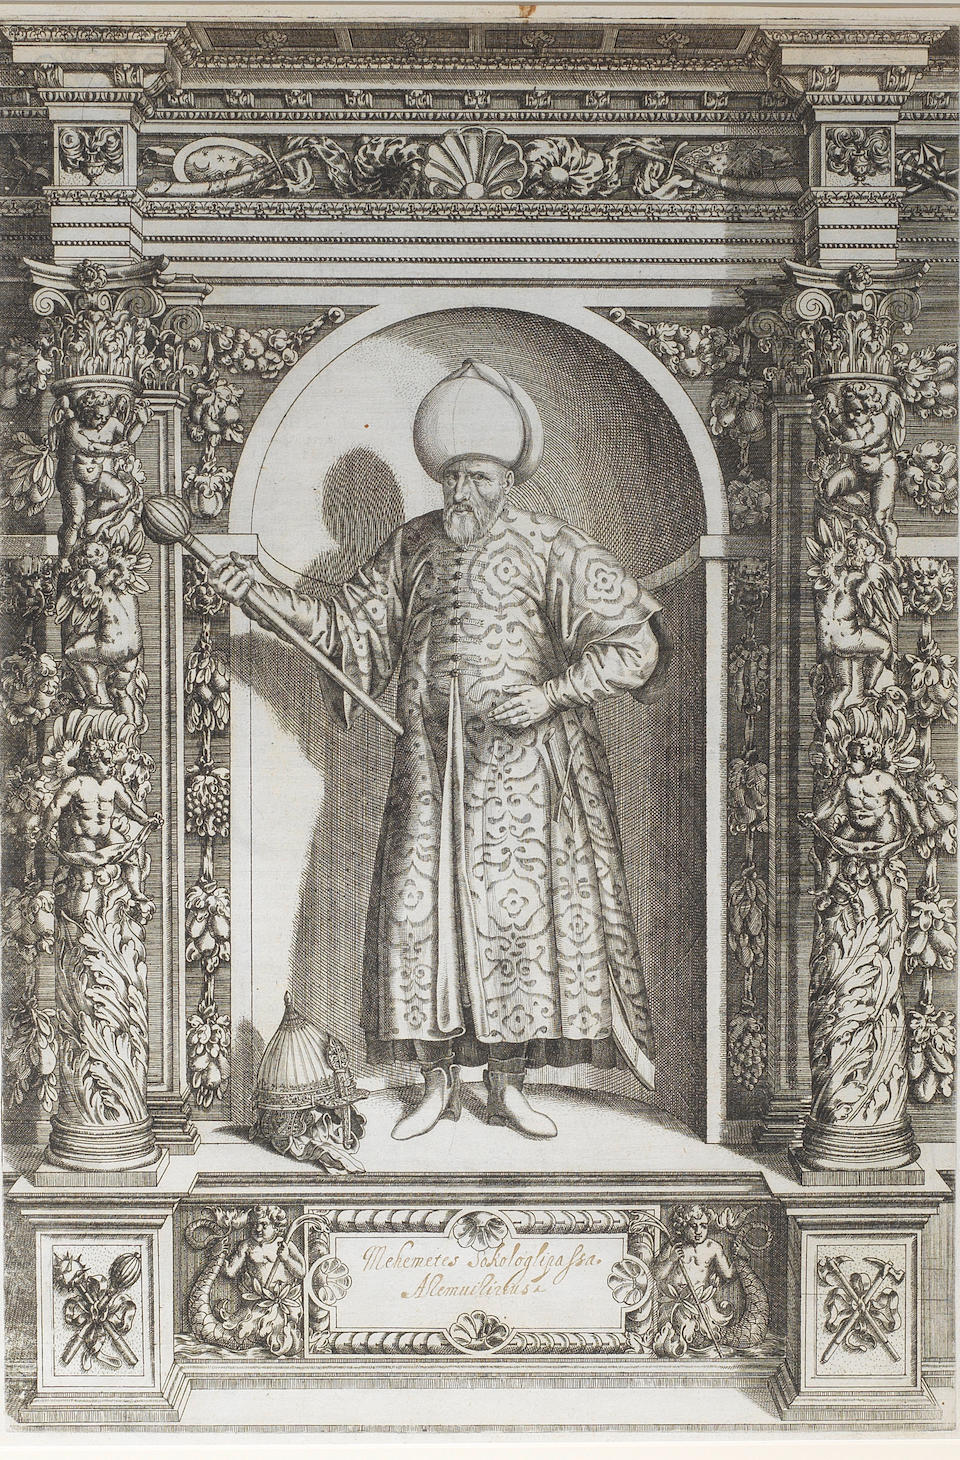 Sultan Suleyman the Magnificent (reg. 1520-66) Engraved by Dominicus Custos (d. 1615) after Giovanni Battista Fontana (d. 1587), Innsbruck, 1601 (2)